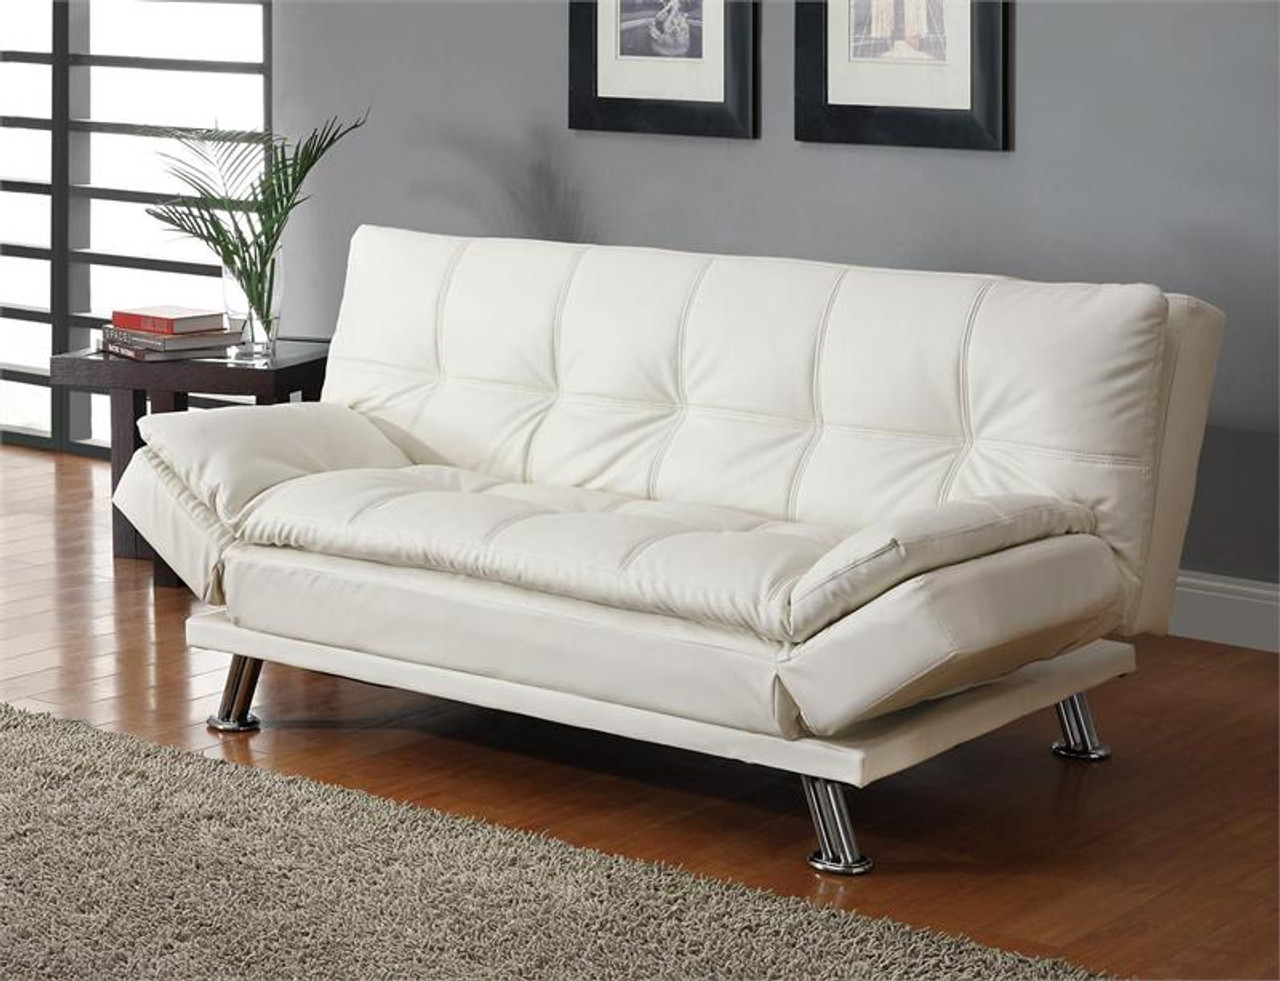 Terrific Contemporary White Leatherette Sofa Bed Caraccident5 Cool Chair Designs And Ideas Caraccident5Info